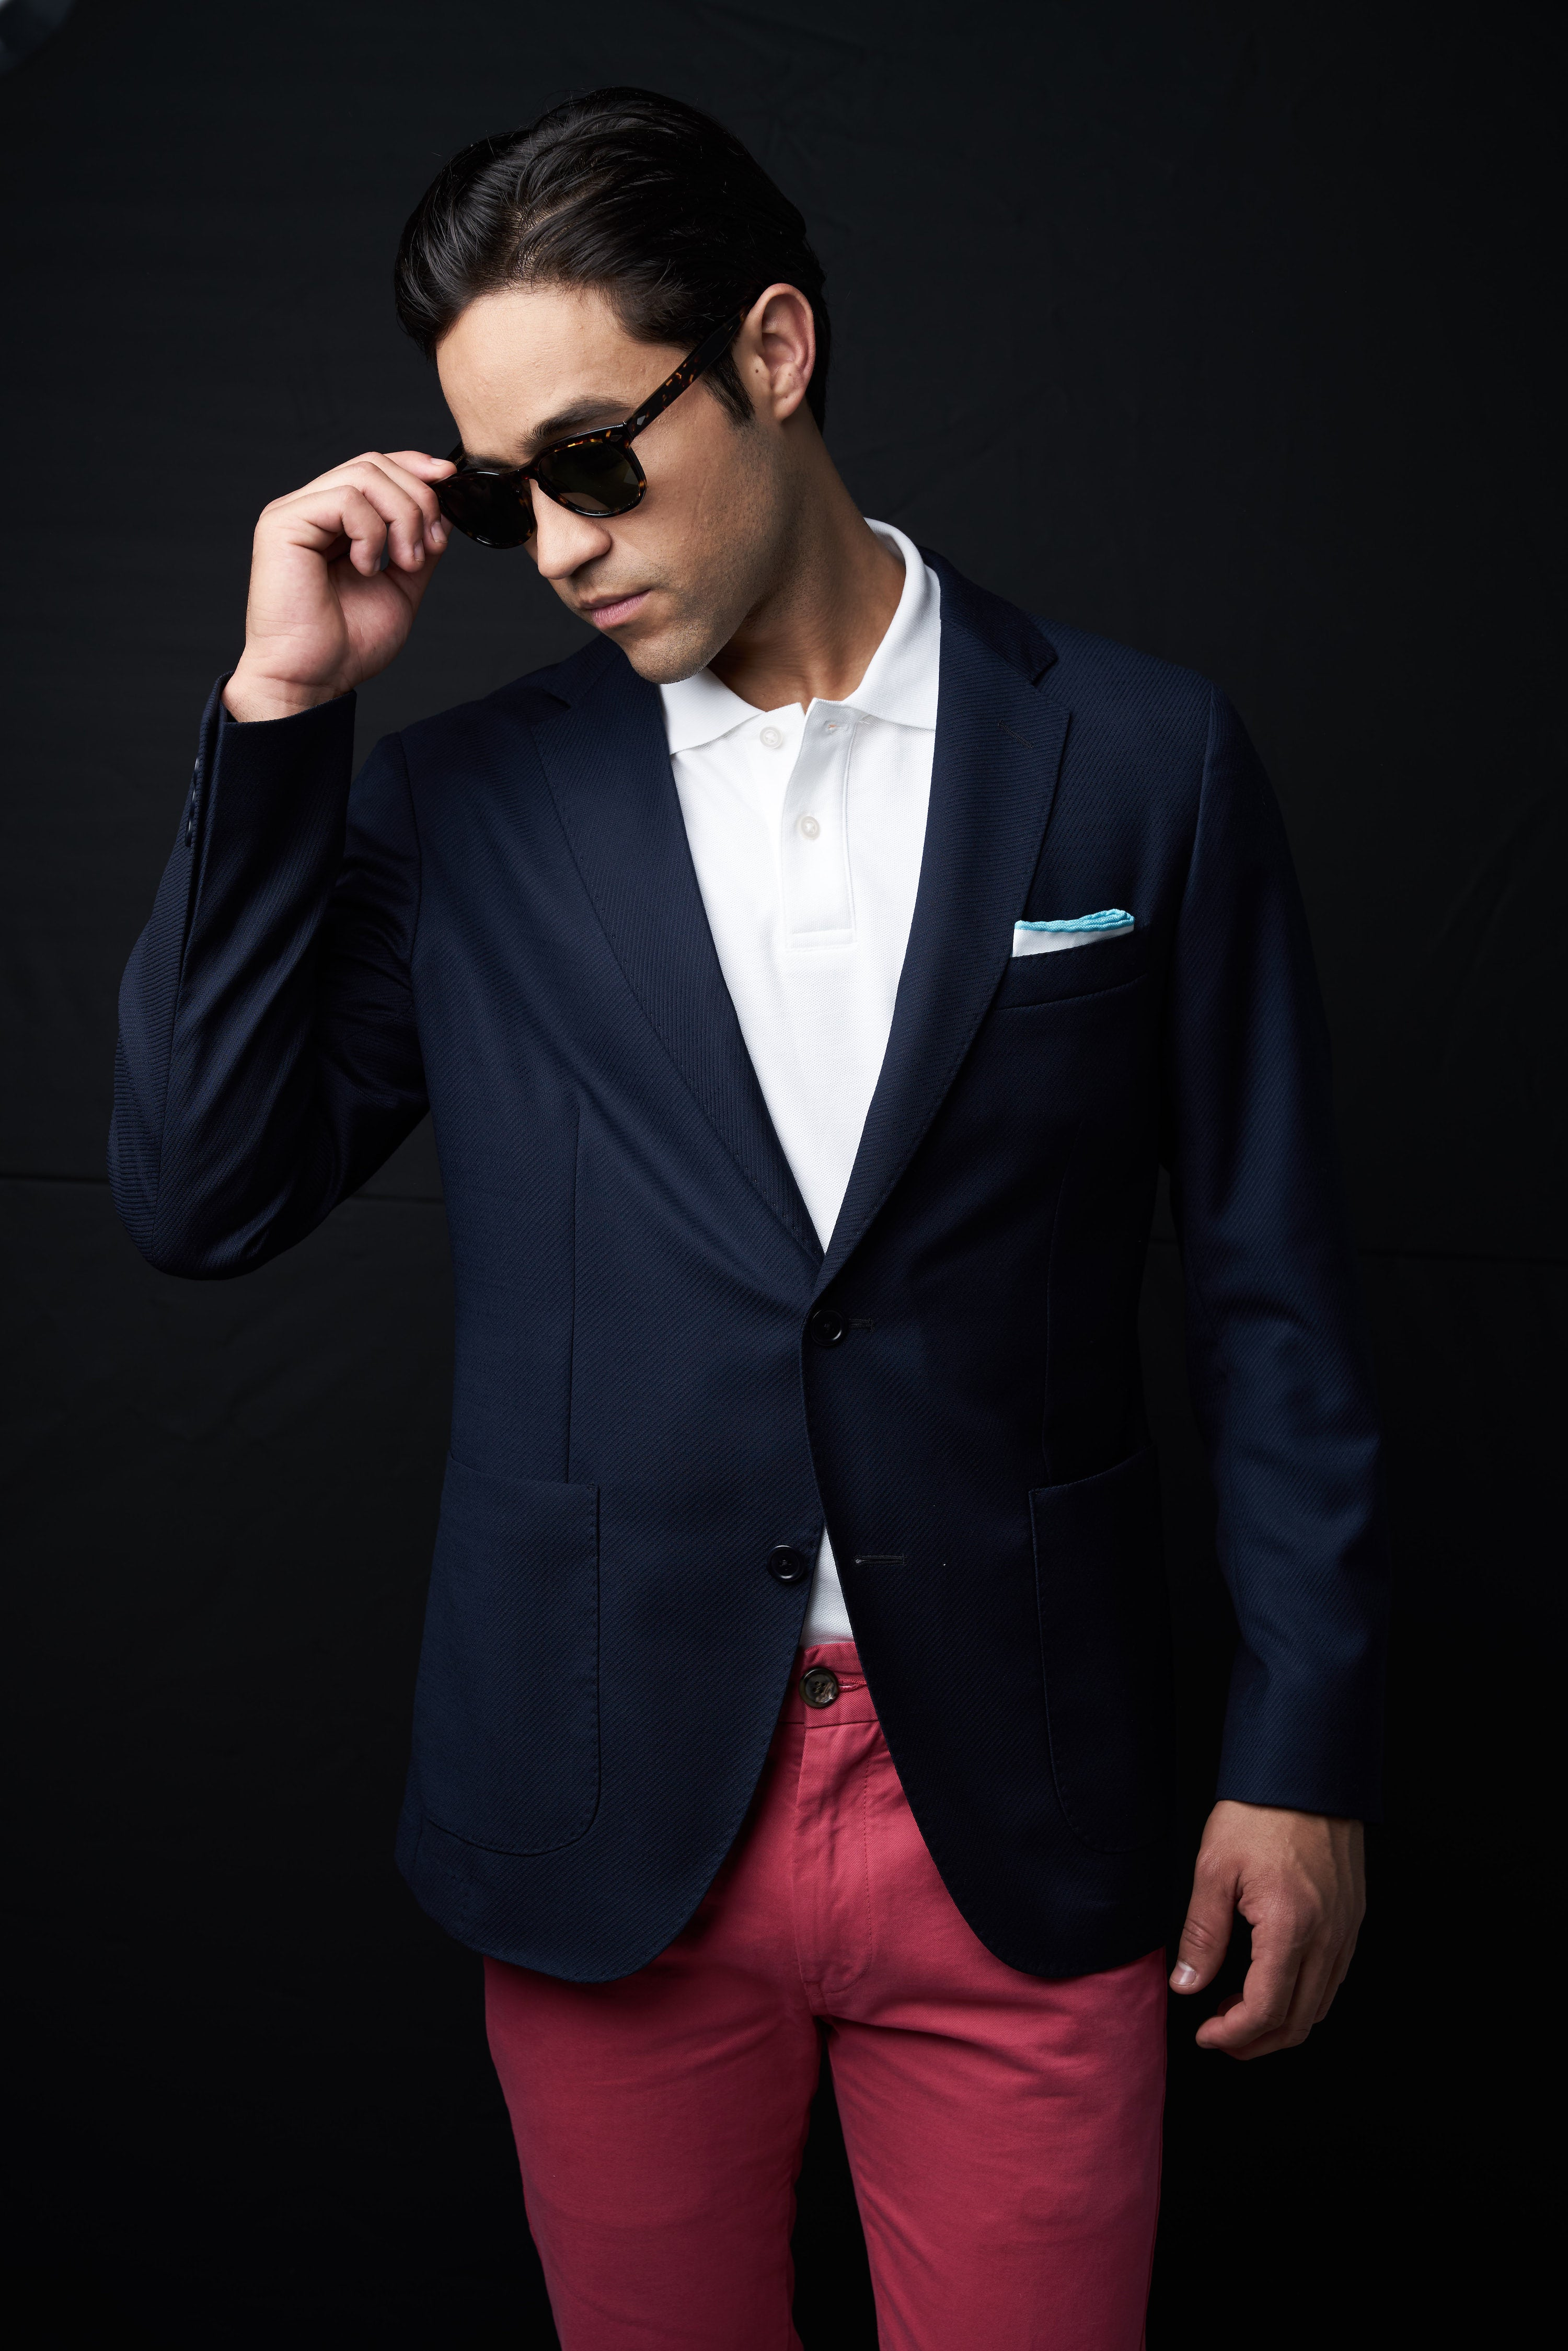 Polo shirt with blazer